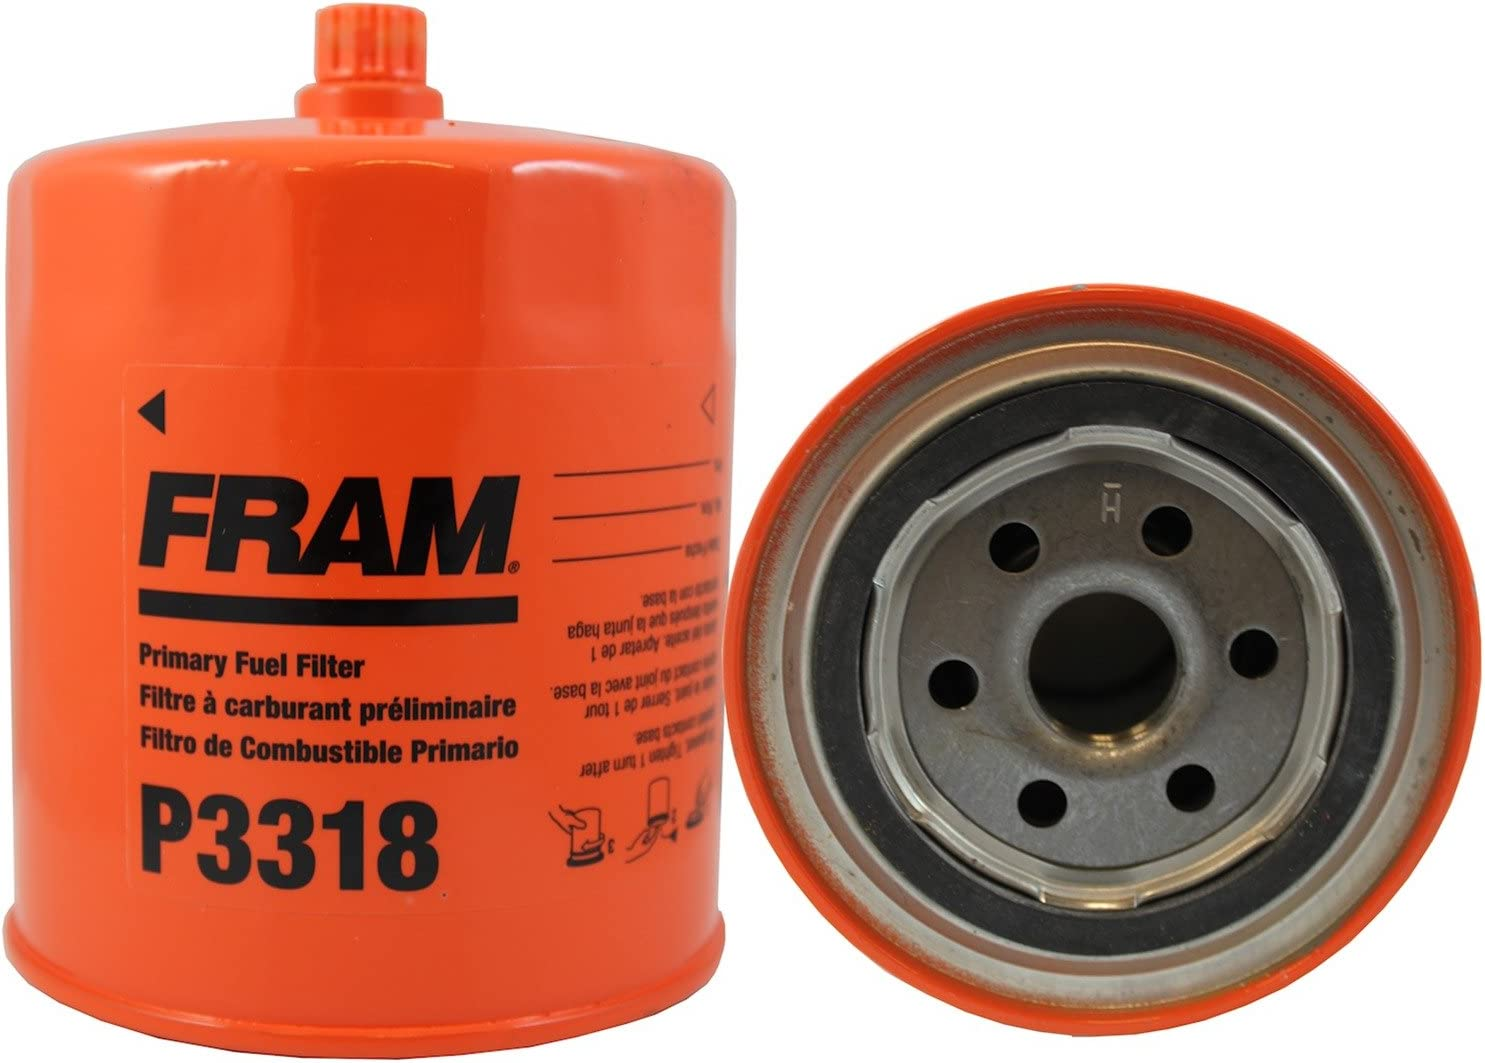 FRAM P3318 Heavy Duty Oil and Fuel Filter